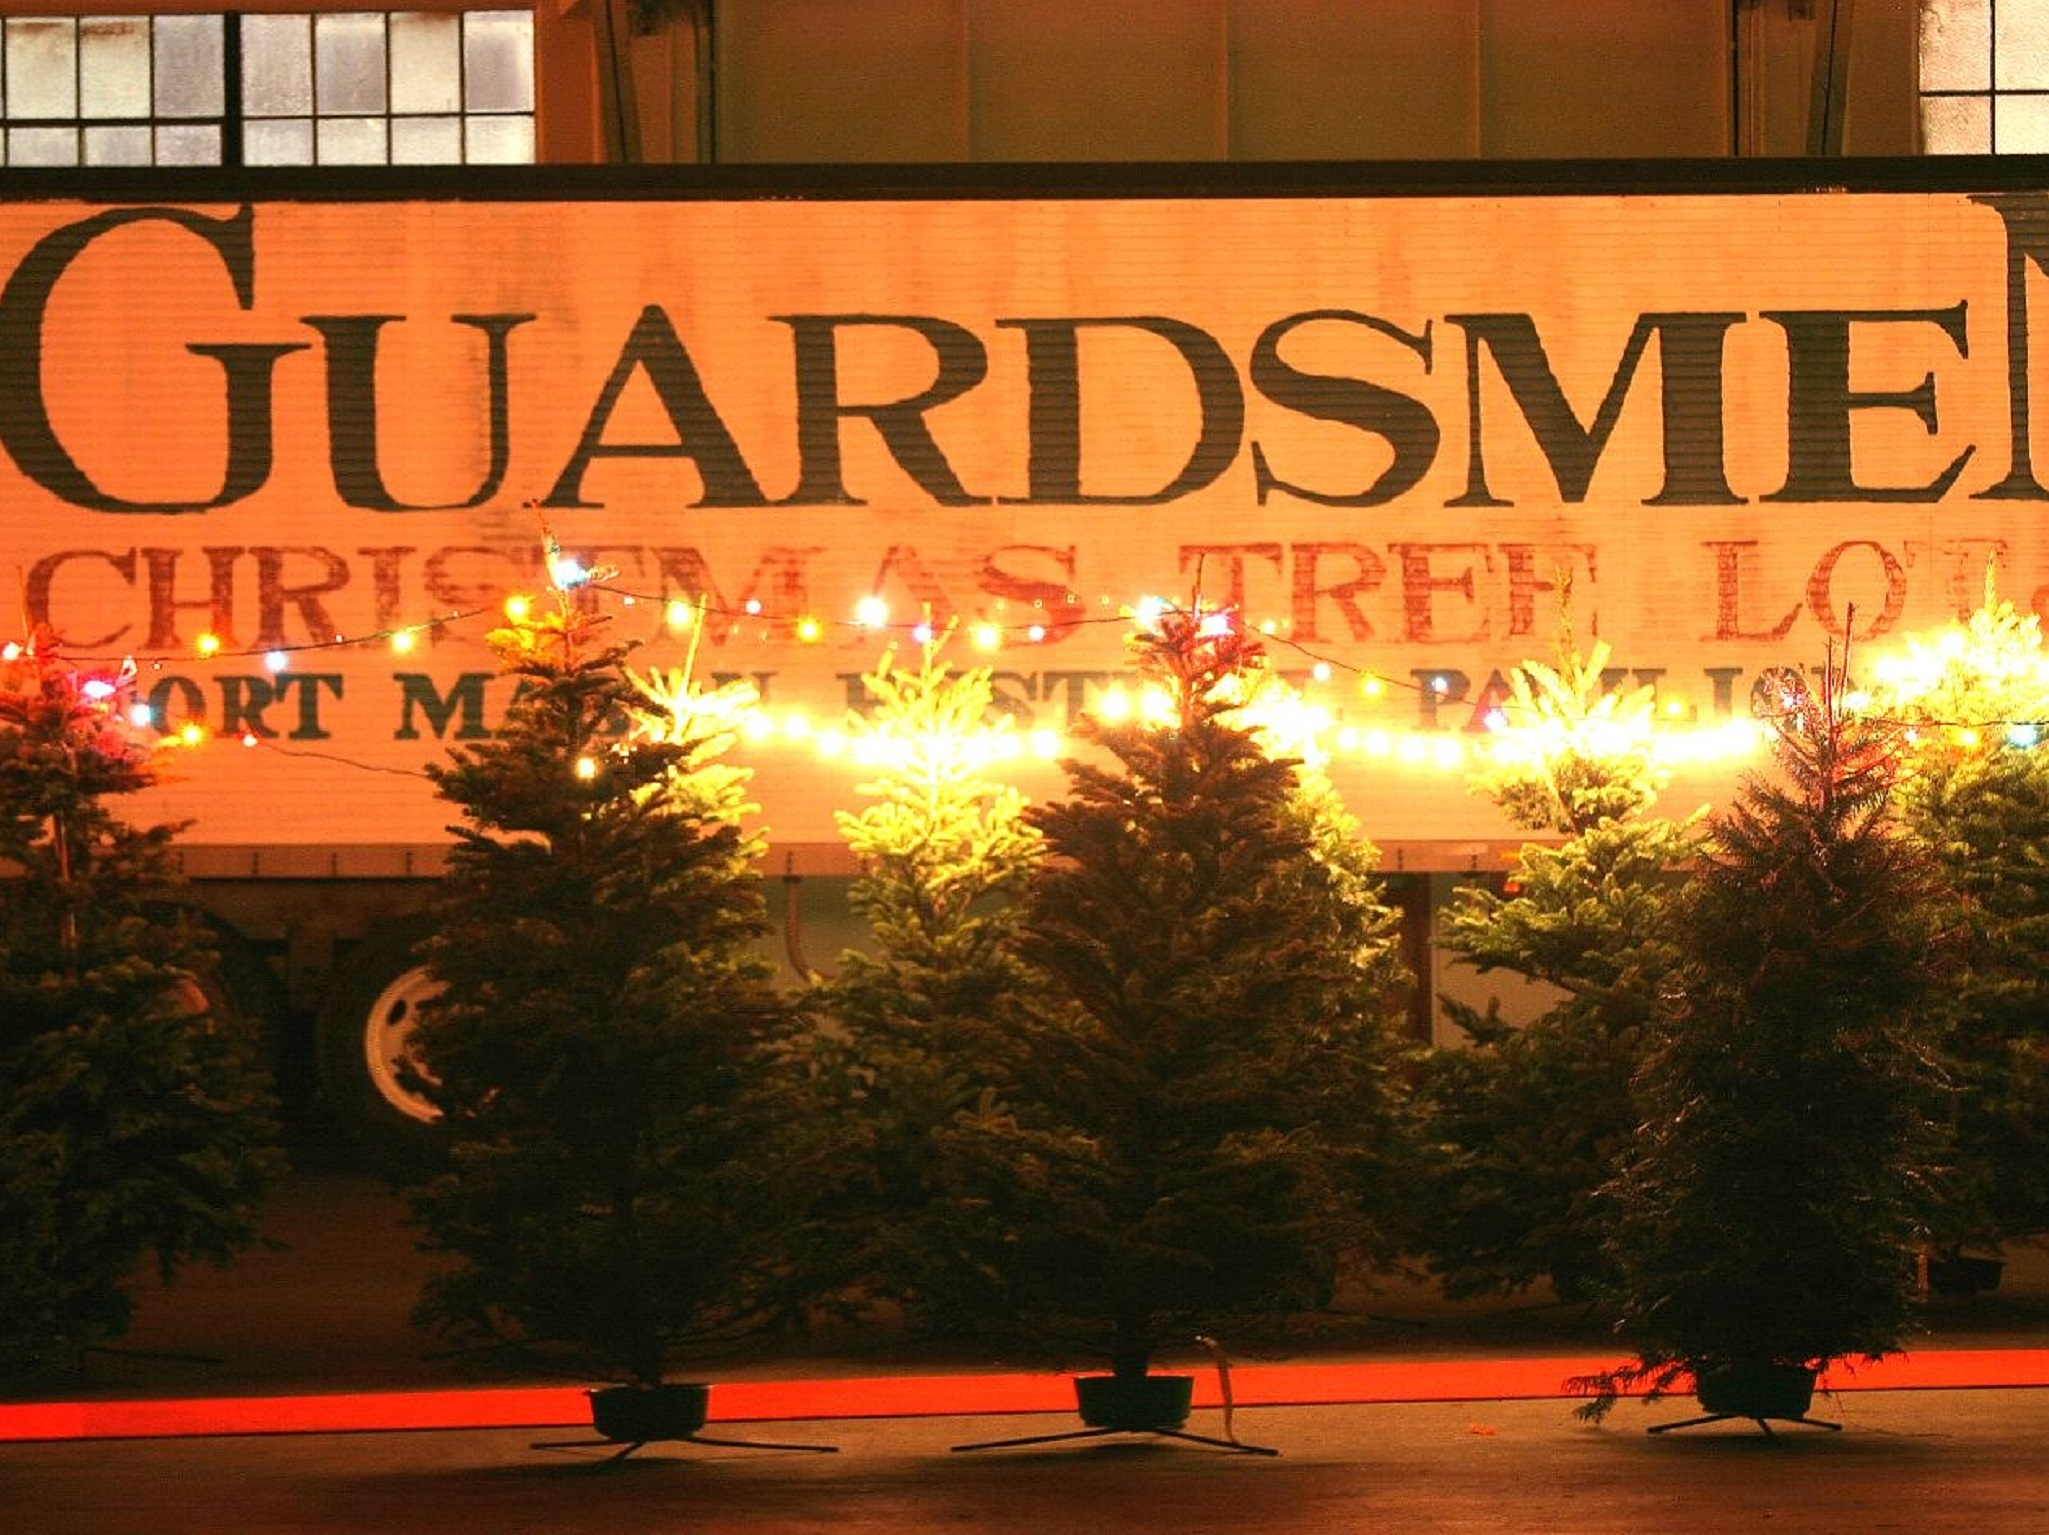 The sign for the Guardsmen lot with trees in front